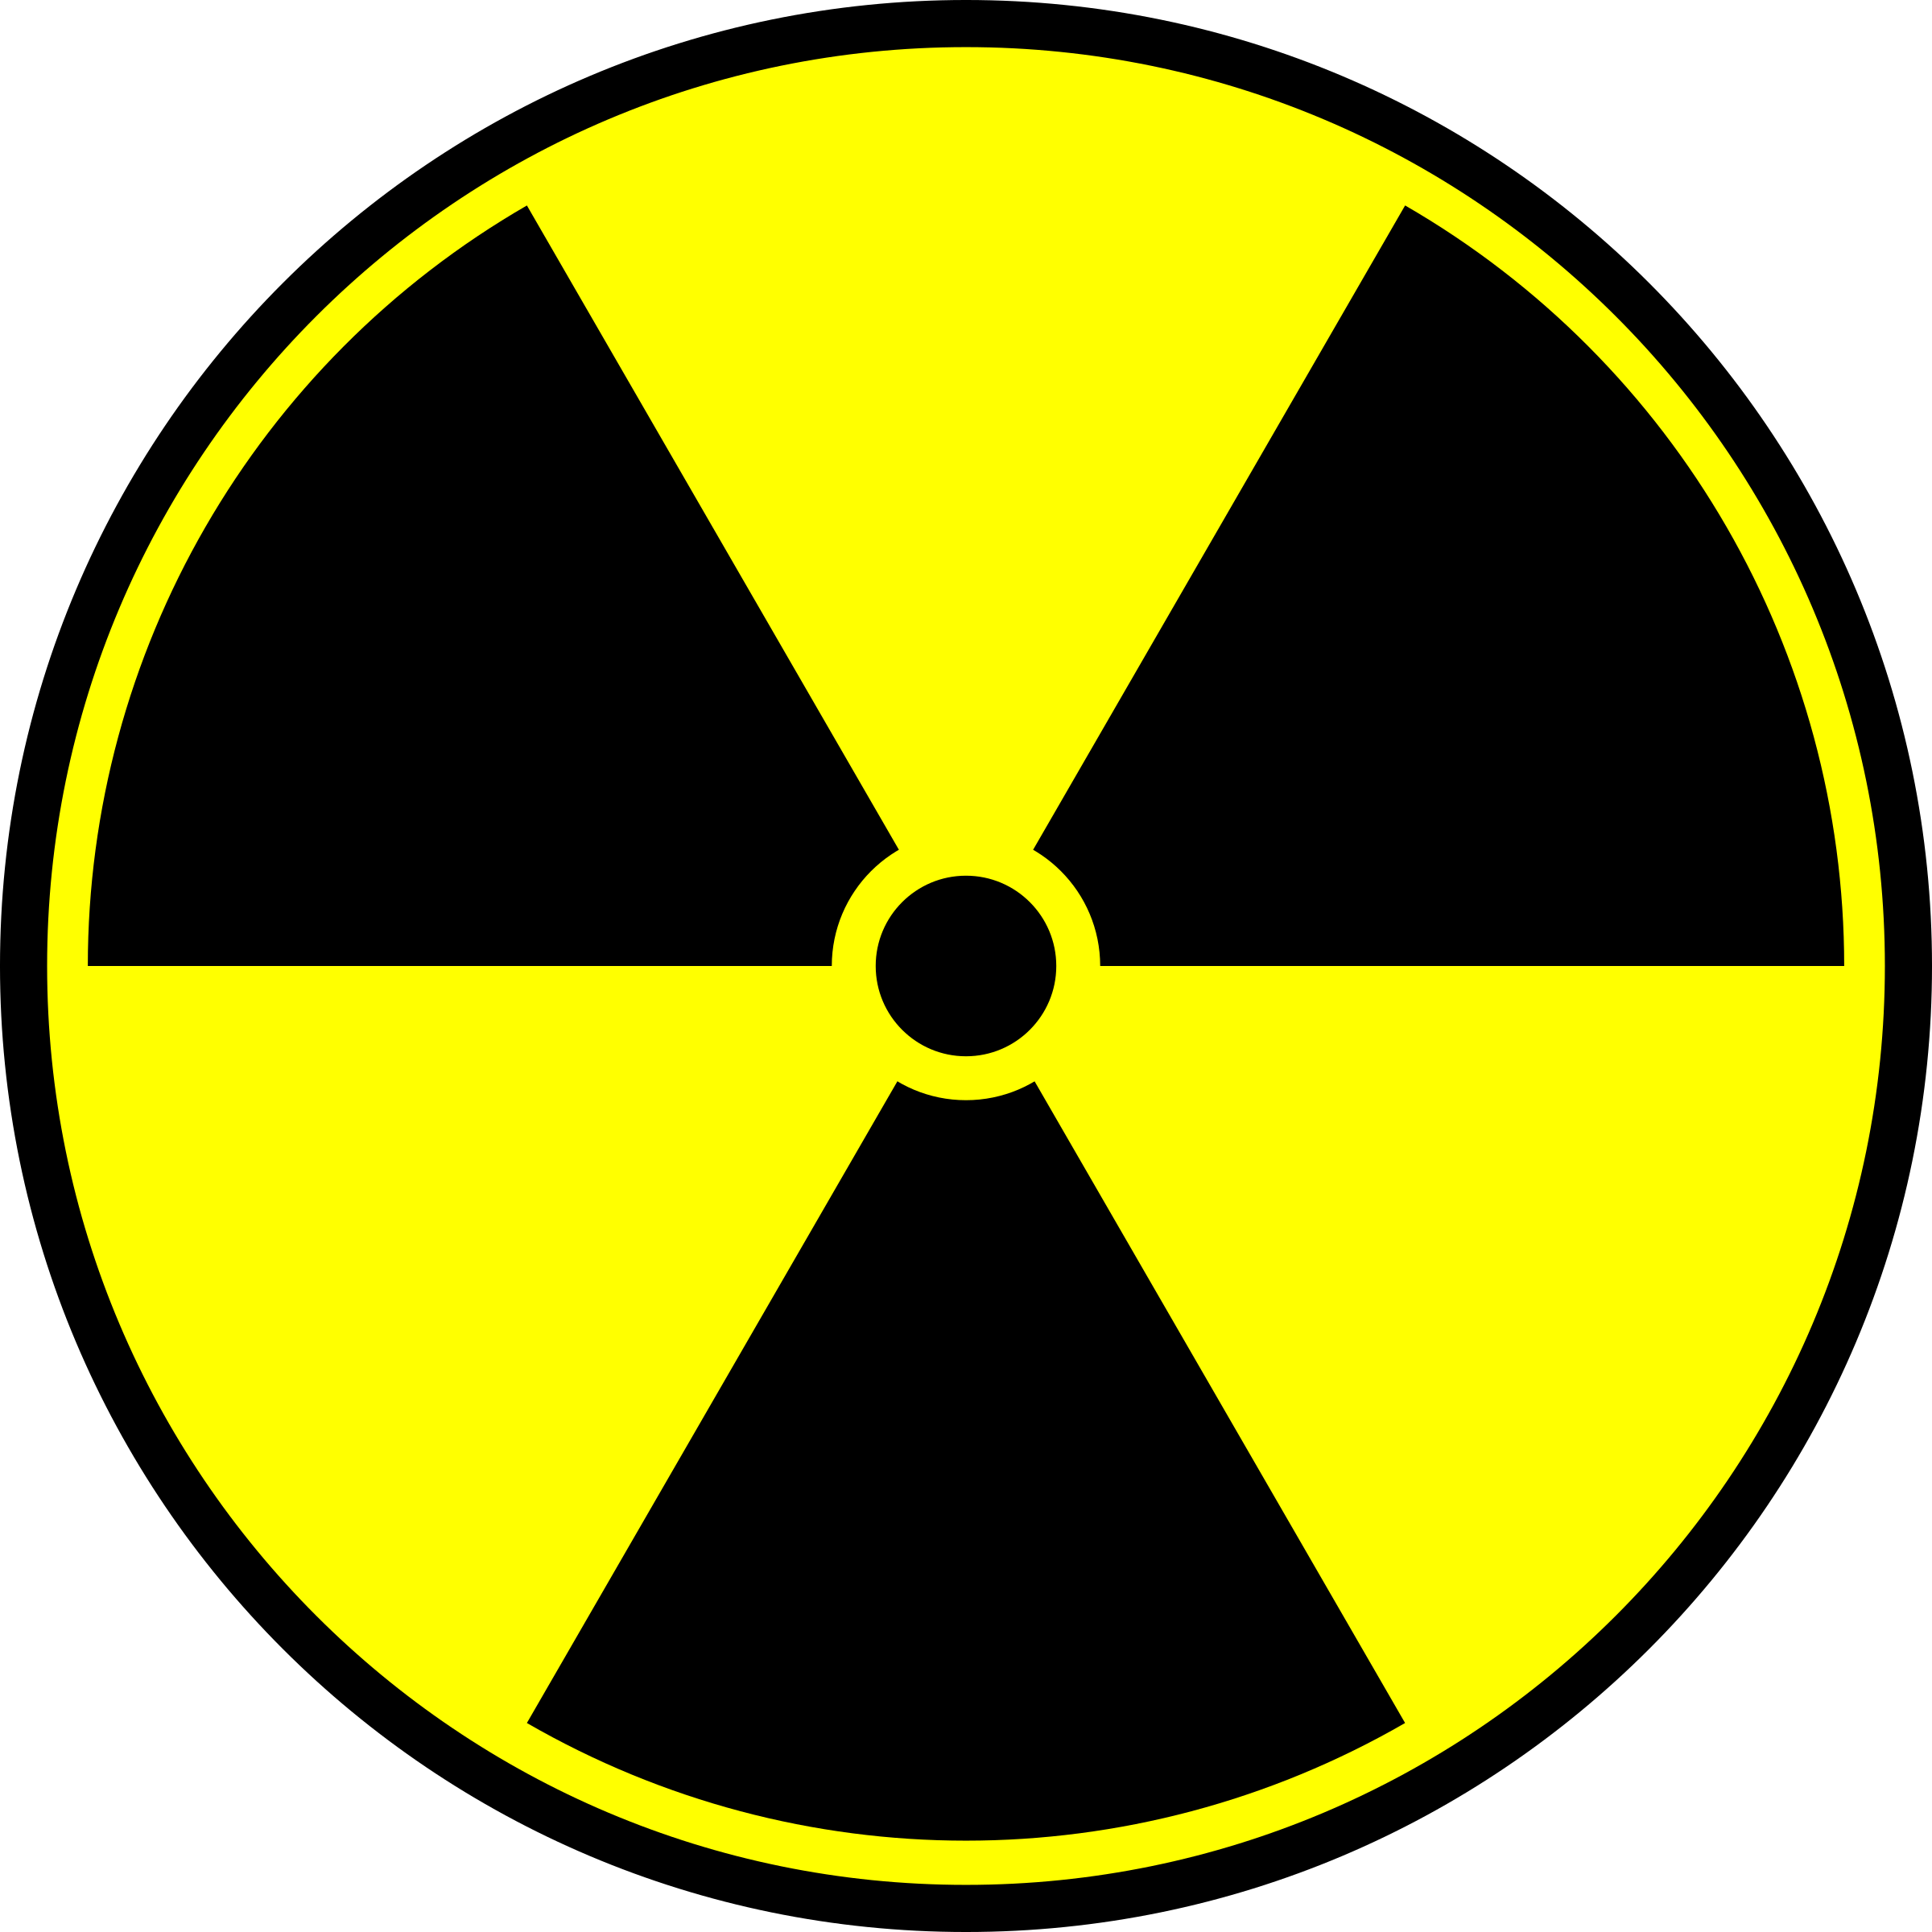 Radioactive symbol by IncessantBlabber